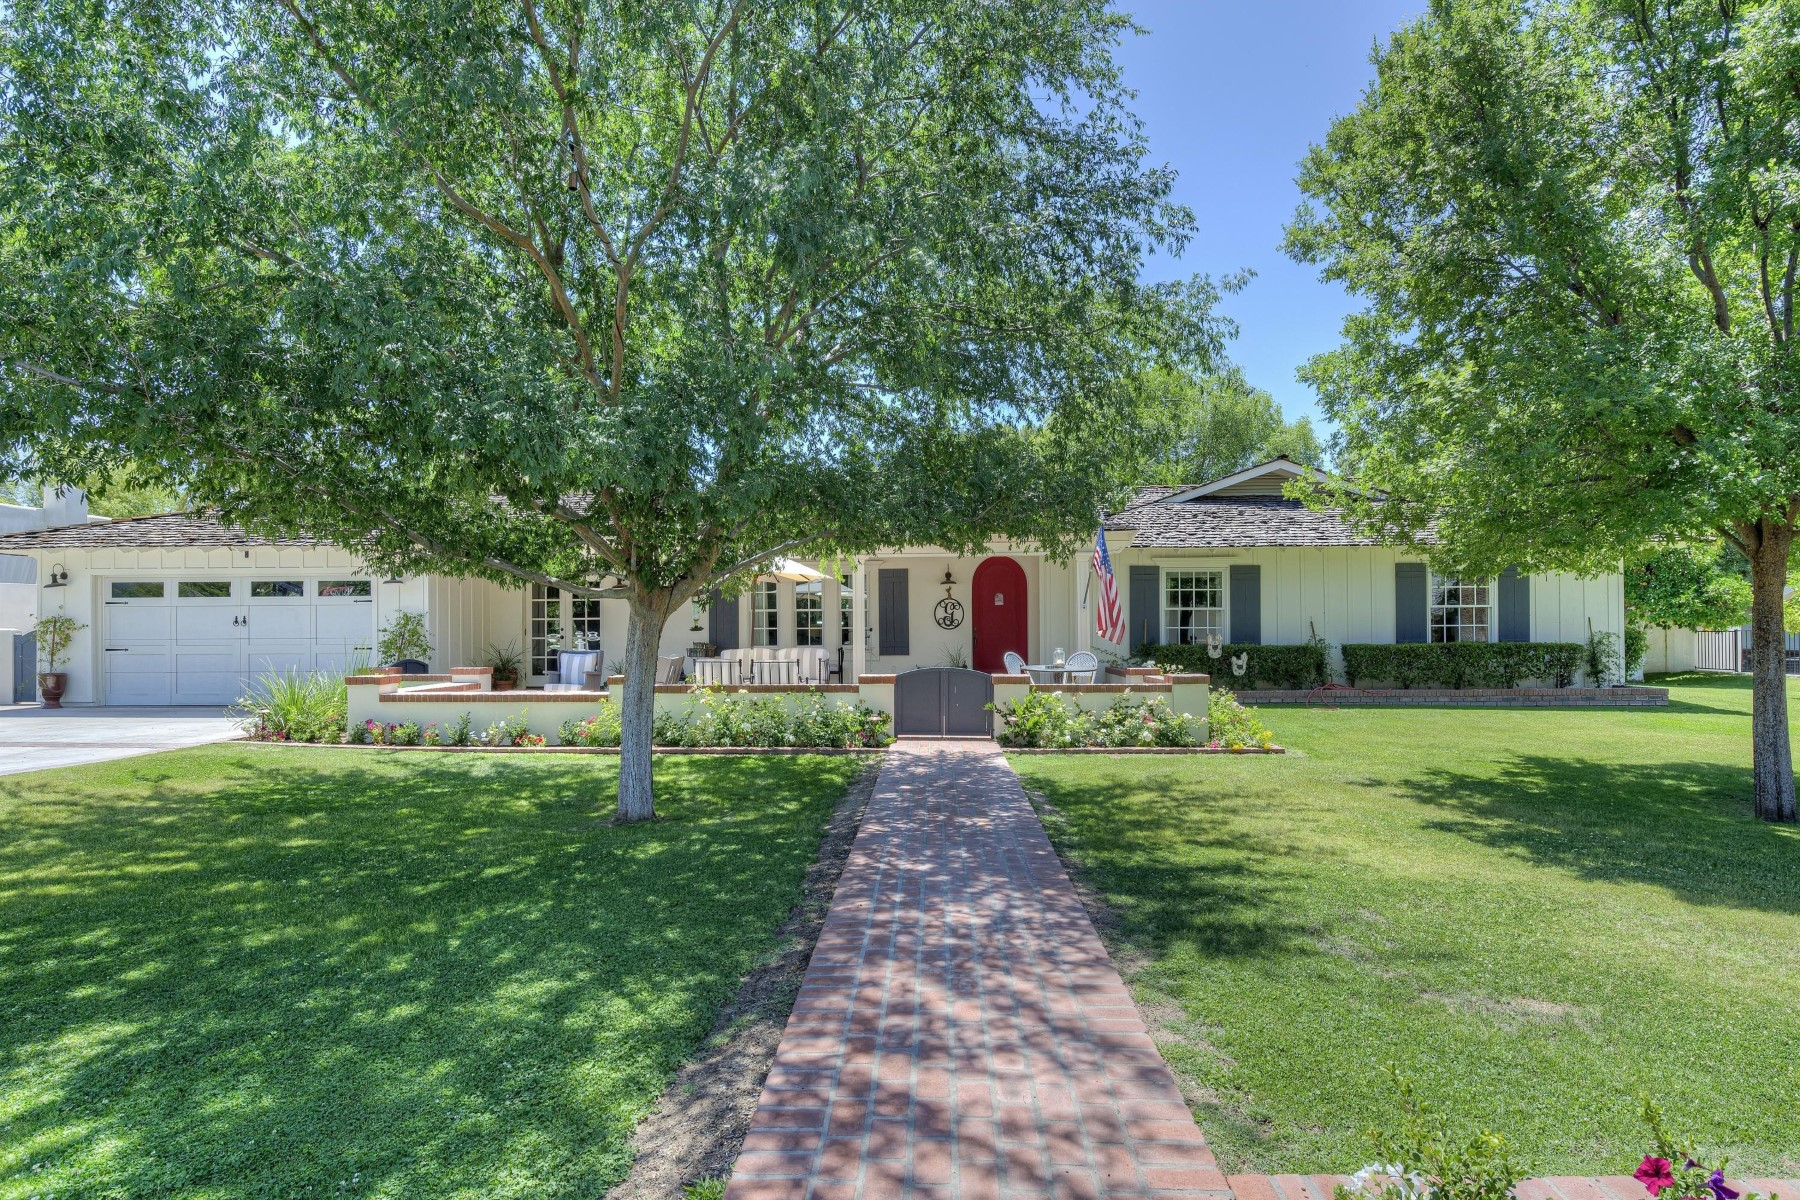 Single Family Home for Sale at Beautifully updated ranch home in the magical Hilker Estates 4115 N 50th Pl Phoenix, Arizona, 85018 United States